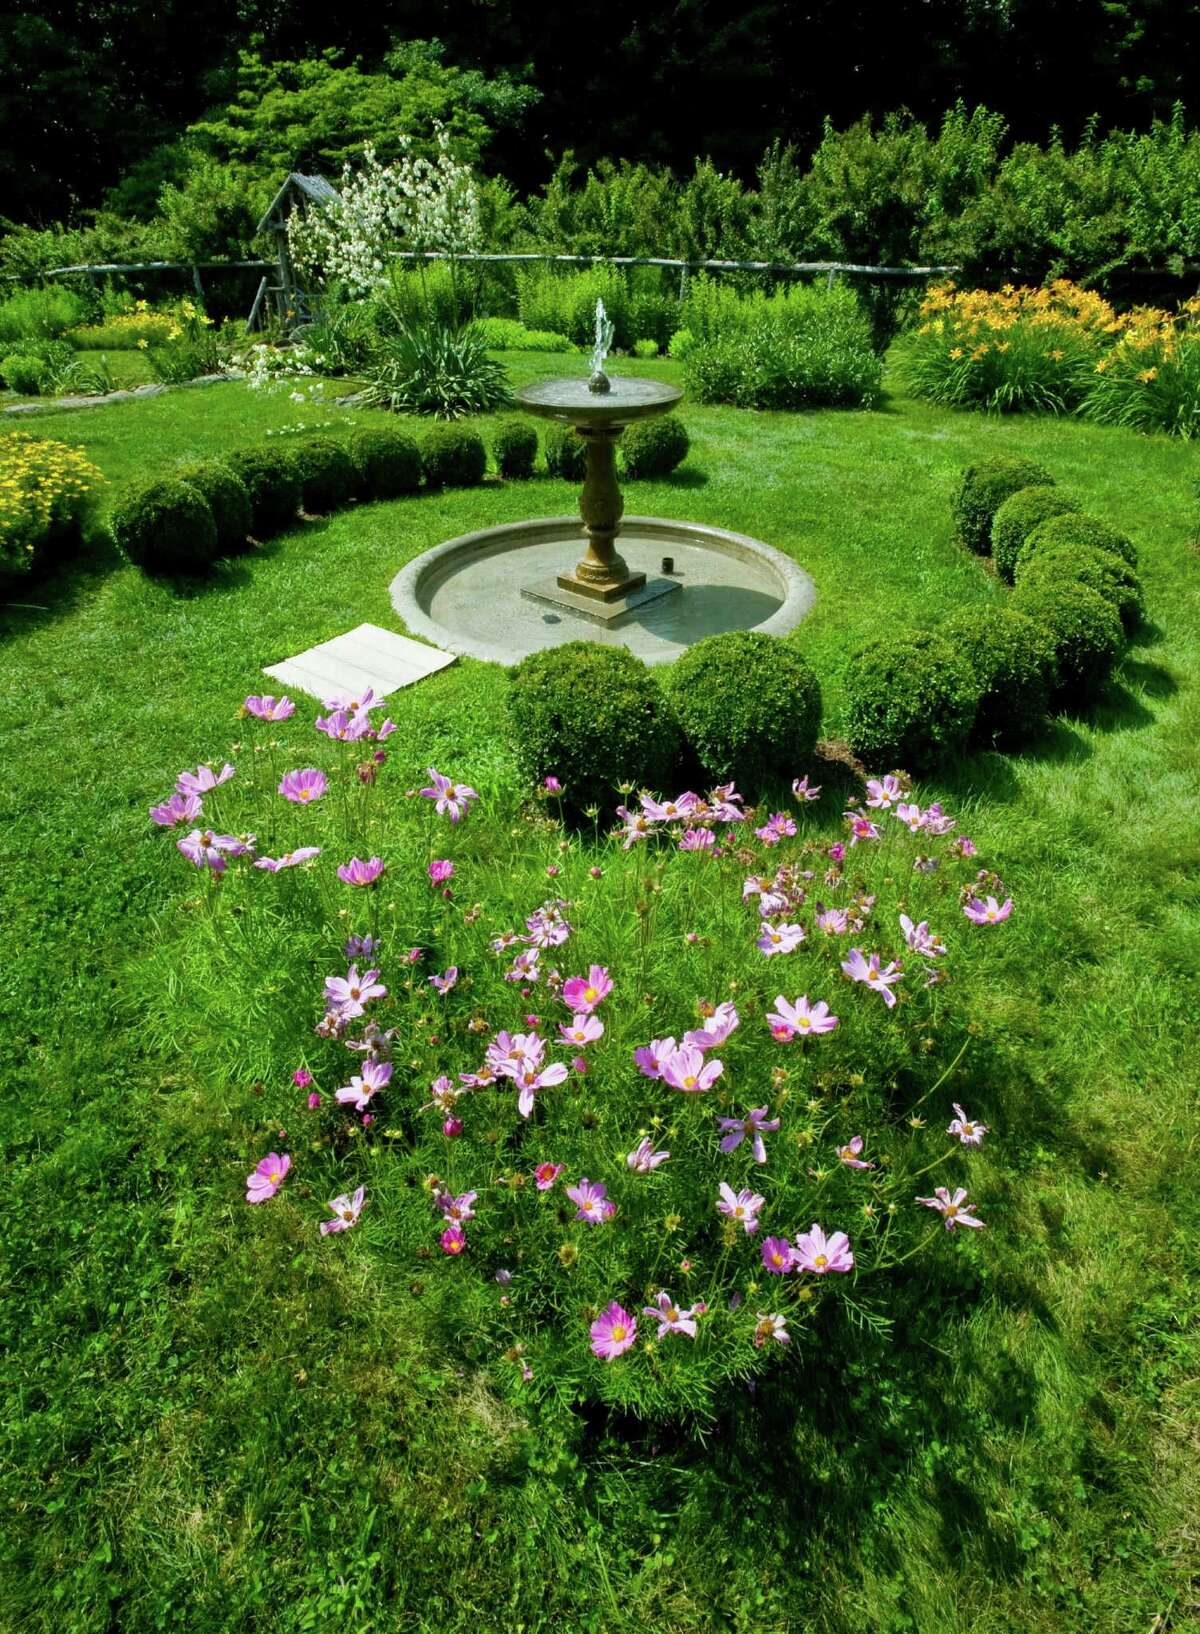 Stroll through a historic garden Connecticut has 14 designated historic gardens that the public can tour. Take your special someone for an afternoon stroll in one of the most beautiful settings in the state.